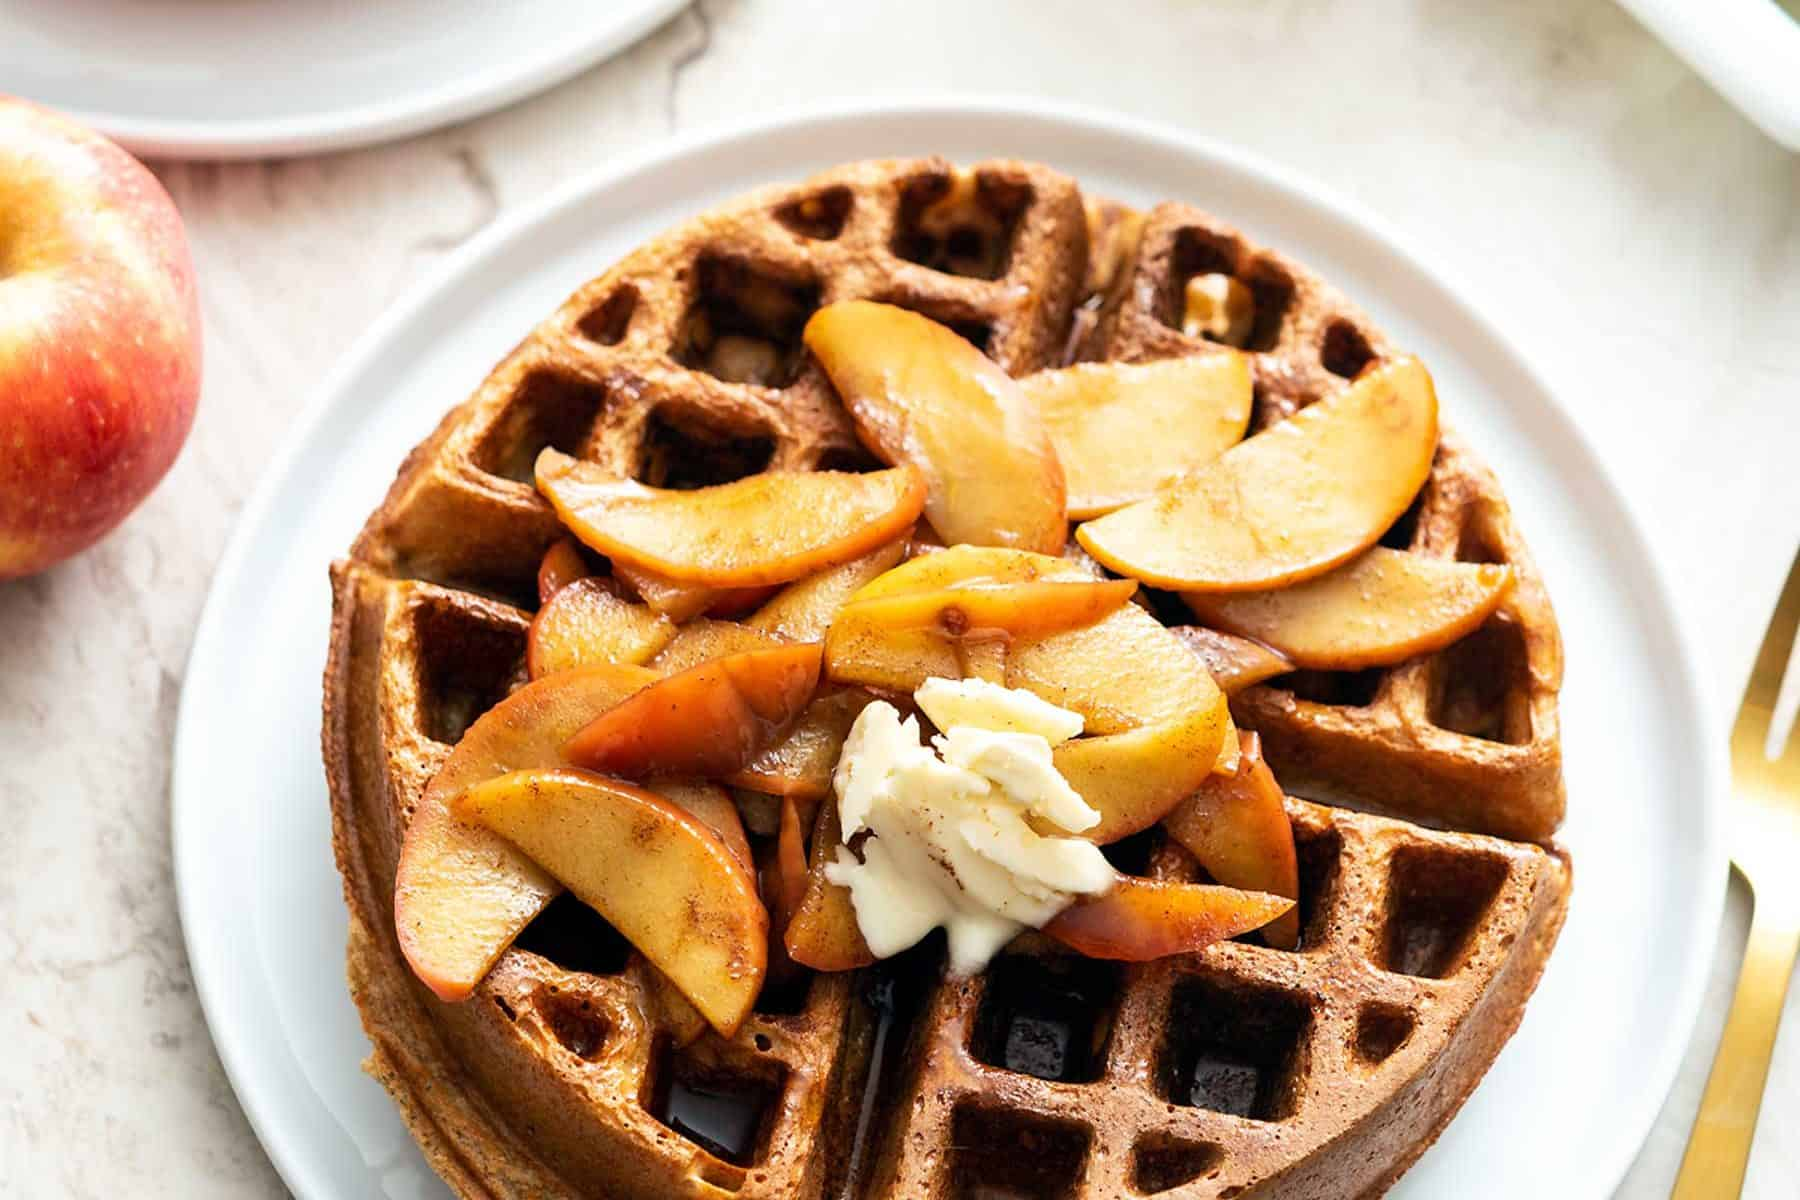 2 large, round, Belgian waffles on white plates, topped with apples and with syrup on the side